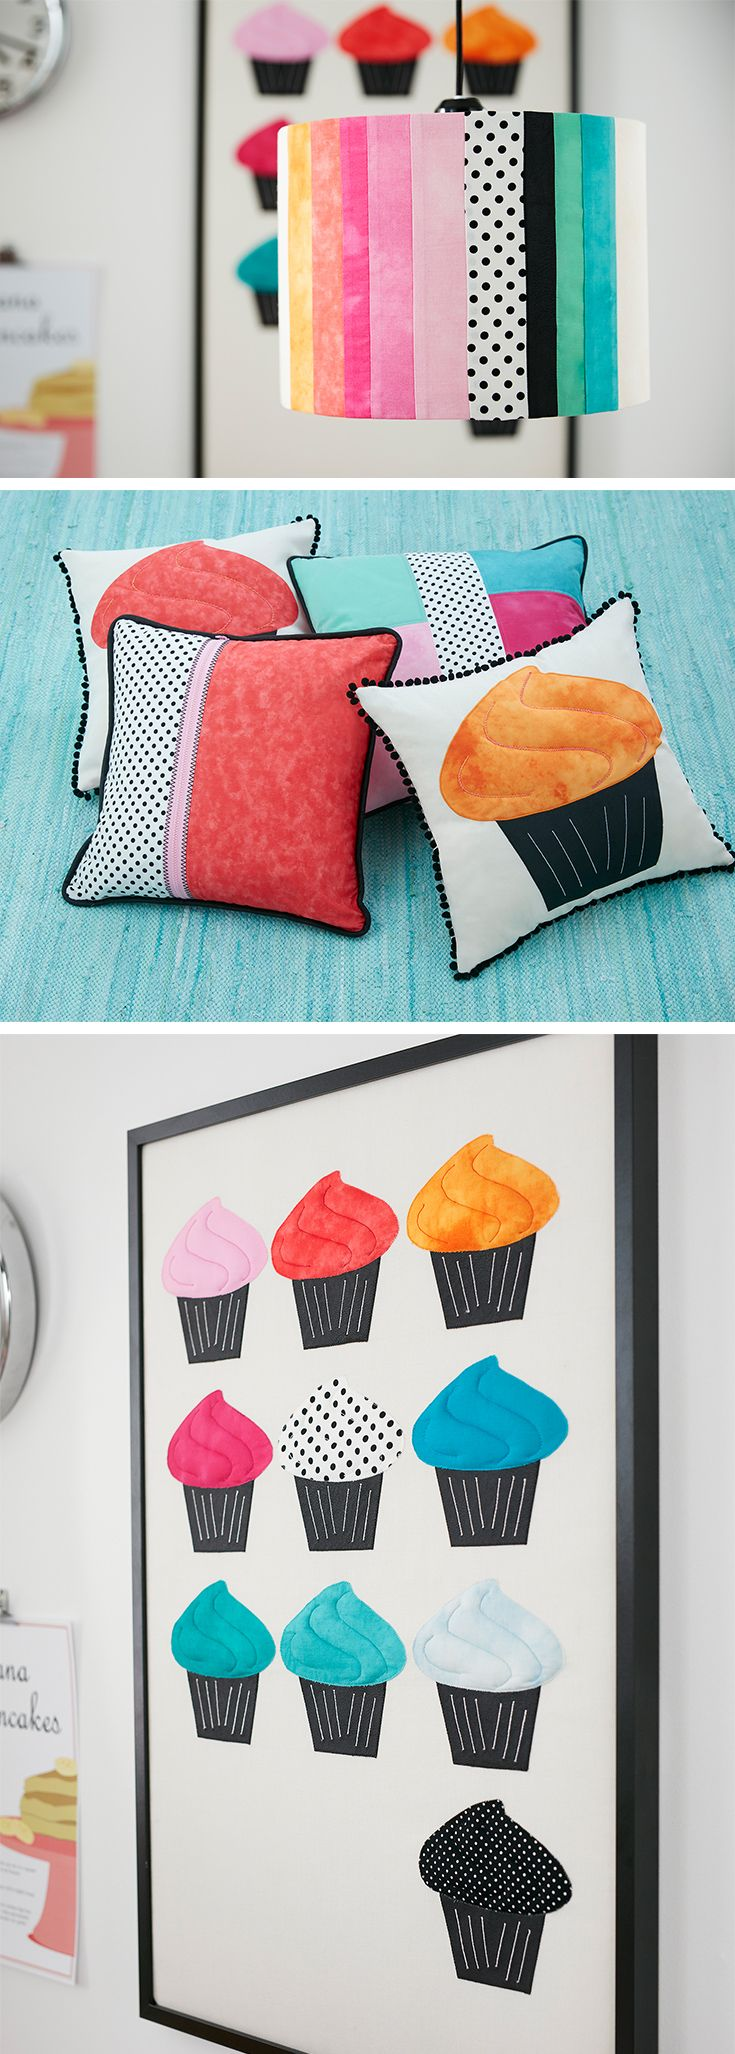 Find sewing instructions for these wonderful projects! #DIY #cupcake #pillows